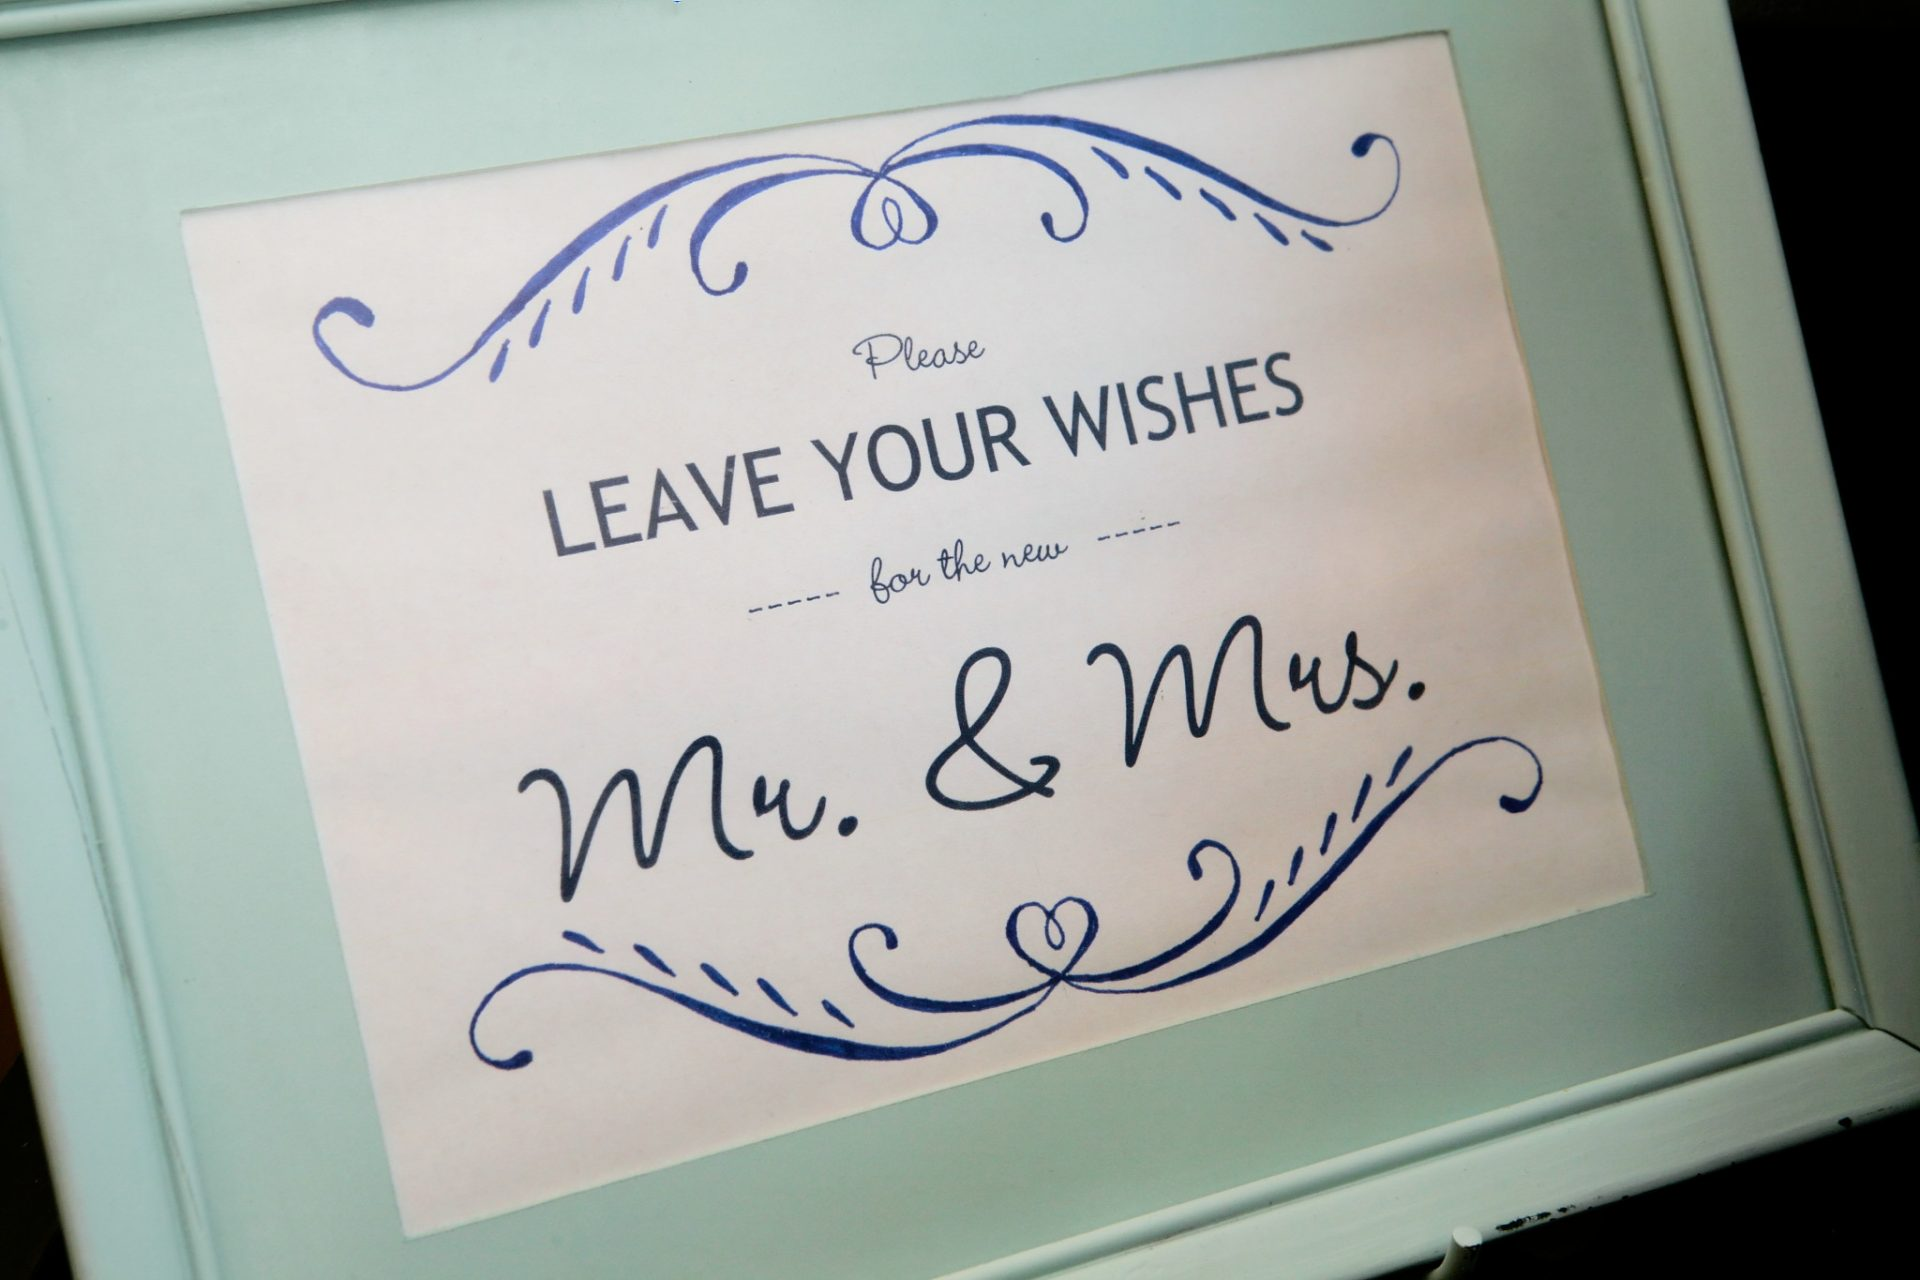 Sign for guests to leave wedding messages for the bride and groom